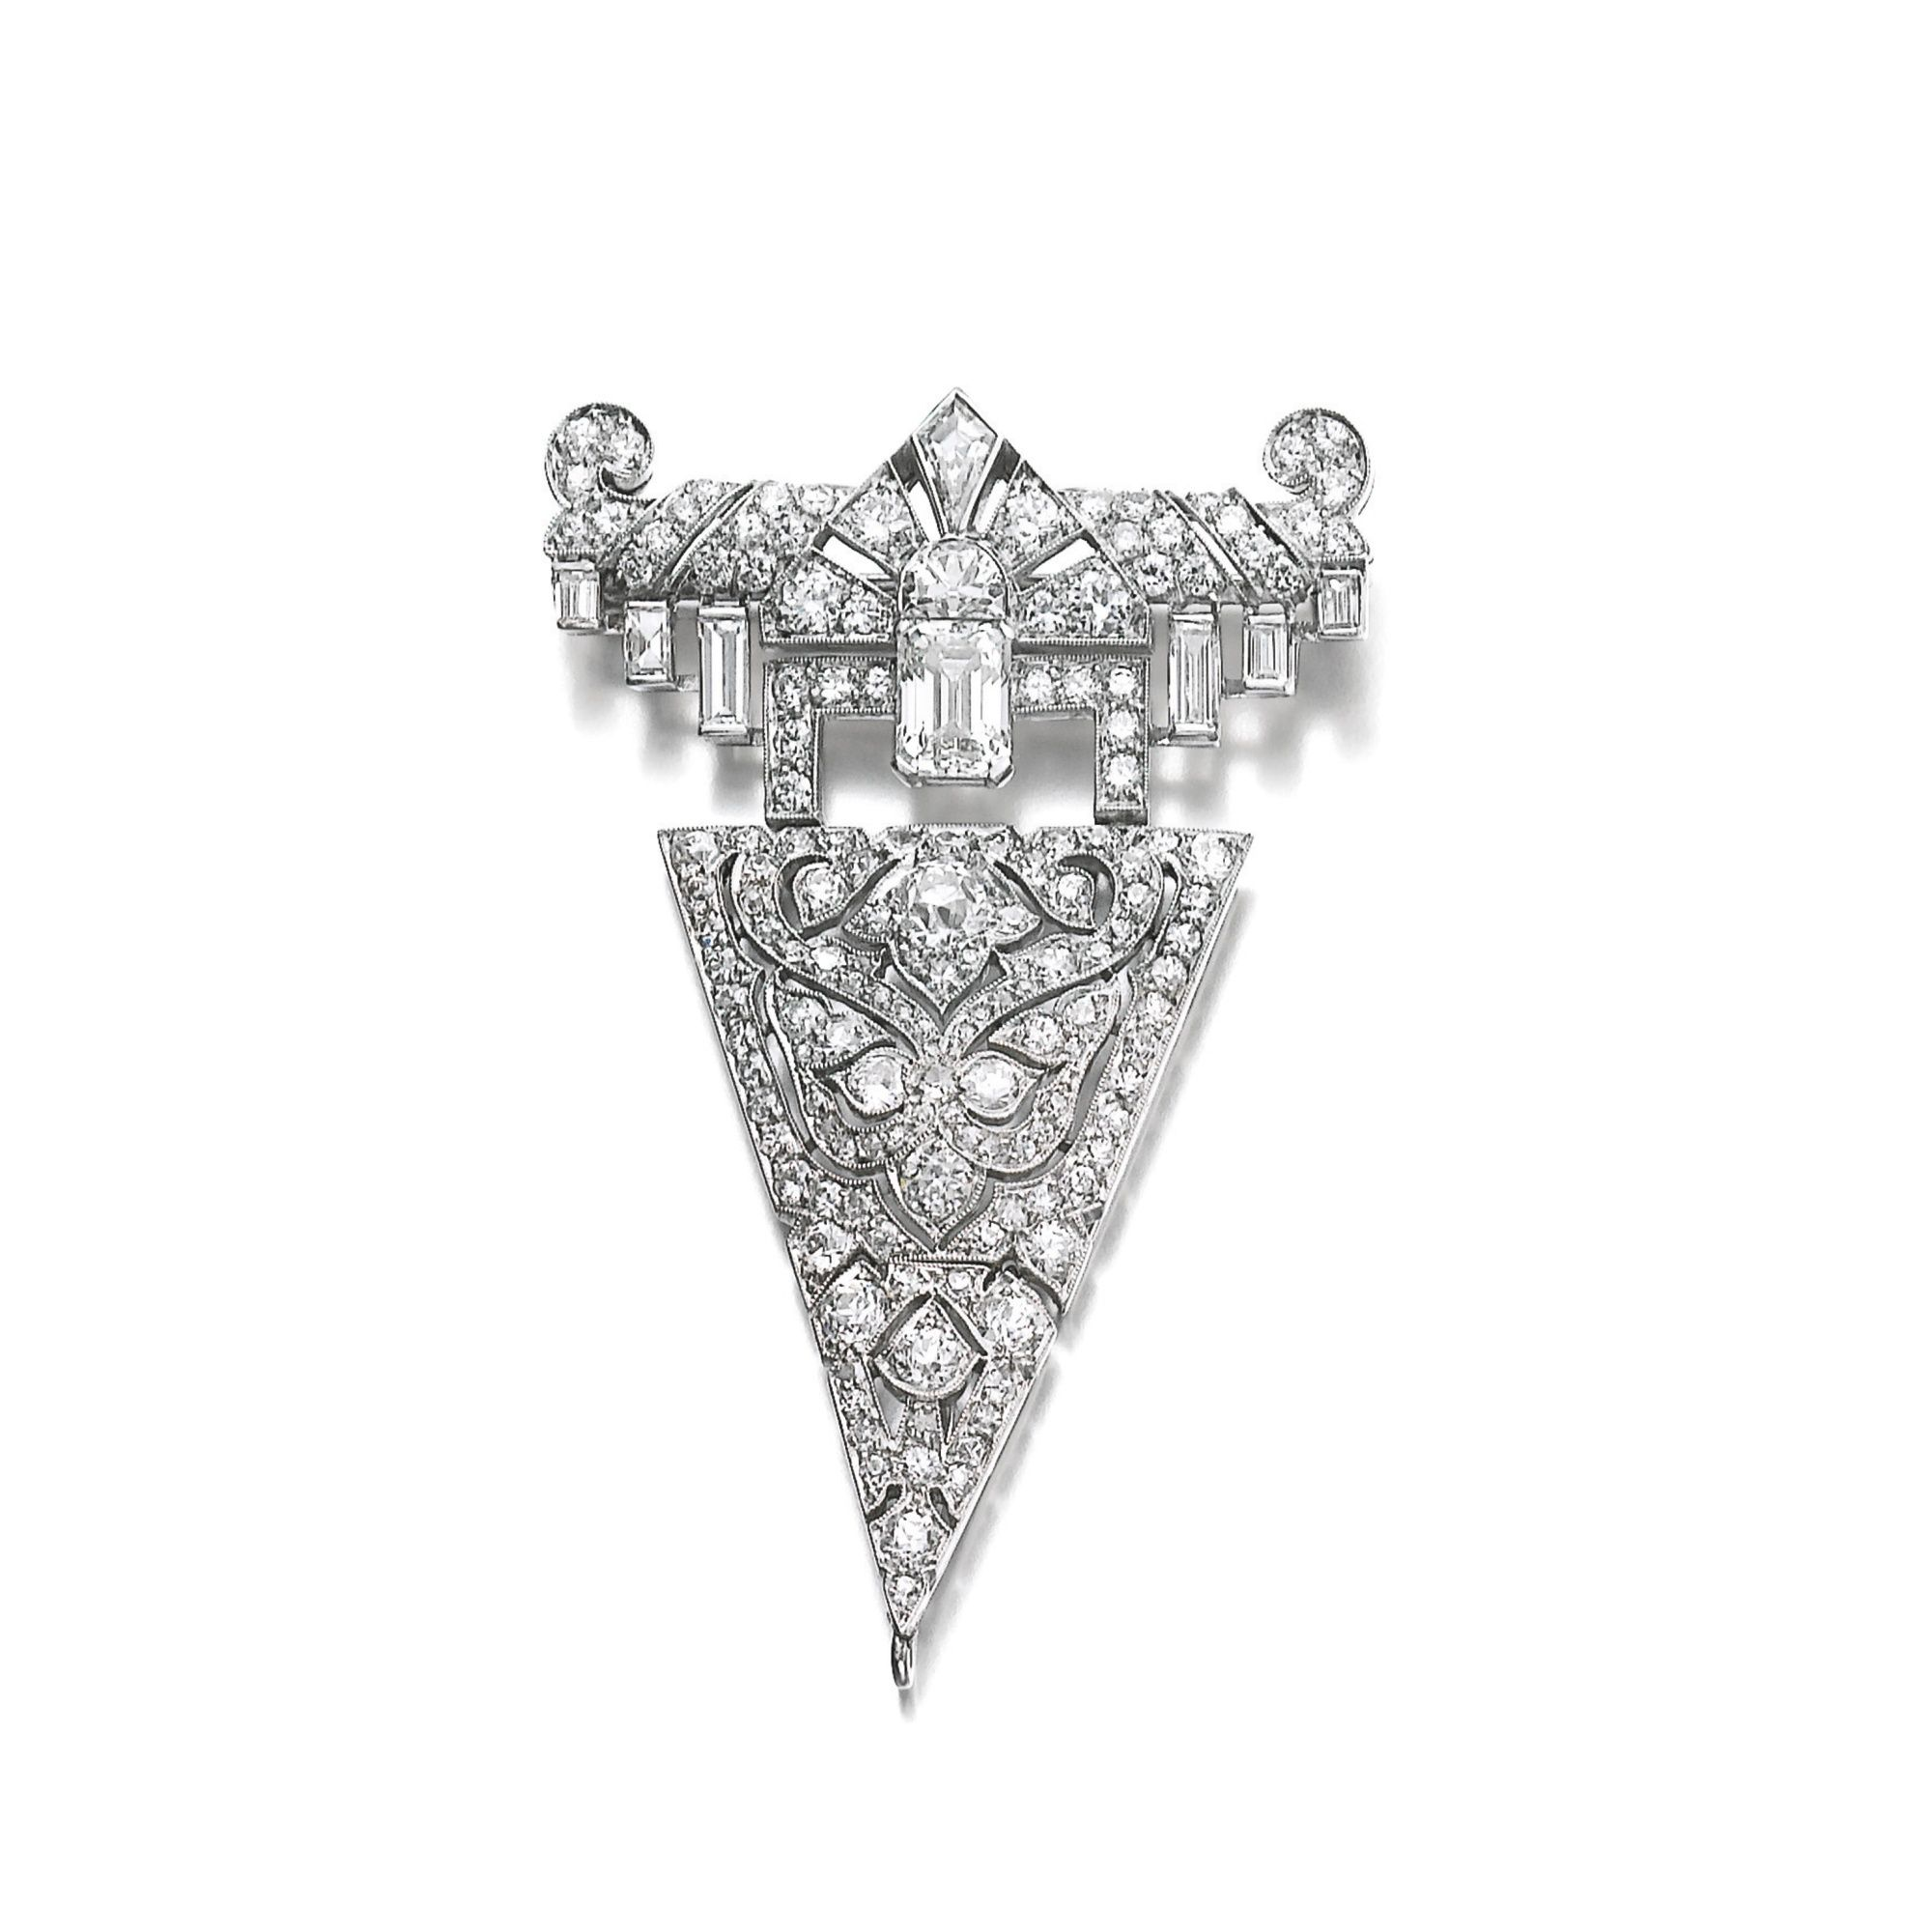 Diamond broochpendant cartier s of geometric and foliate